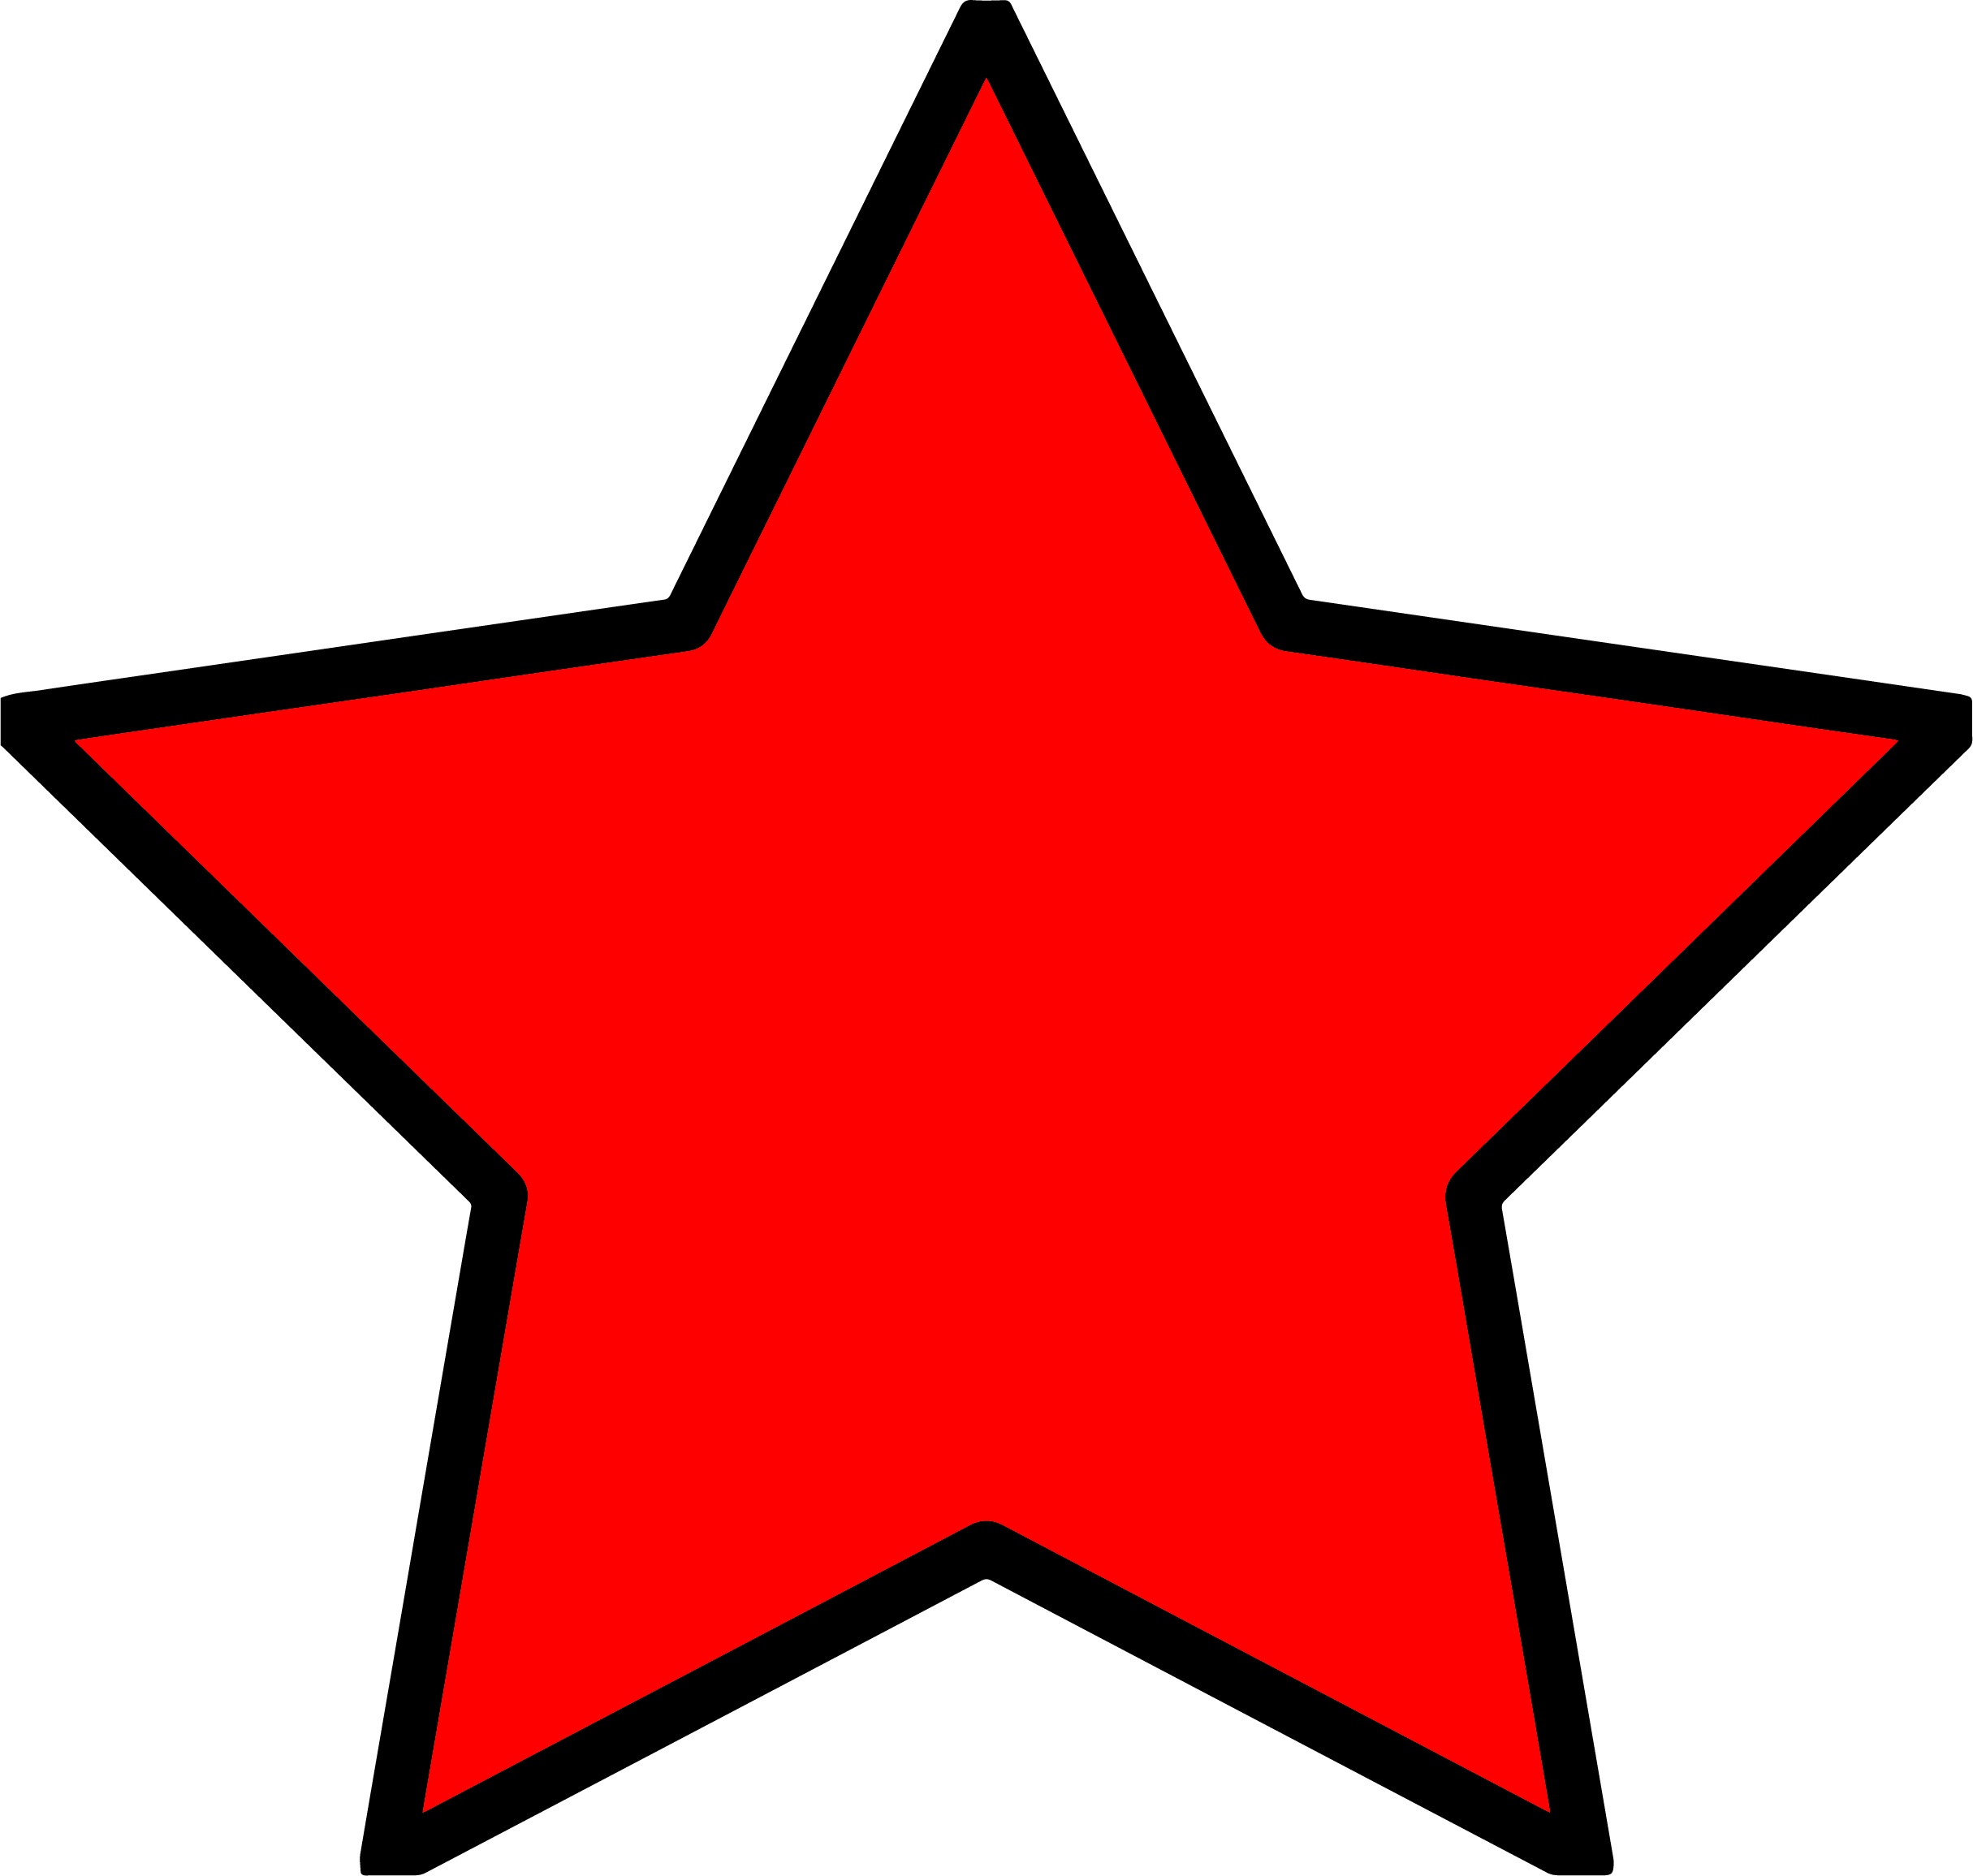 Realistic star clipart clipart freeuse stock Red Clipart Star Download - Clipartly.comClipartly.com clipart freeuse stock